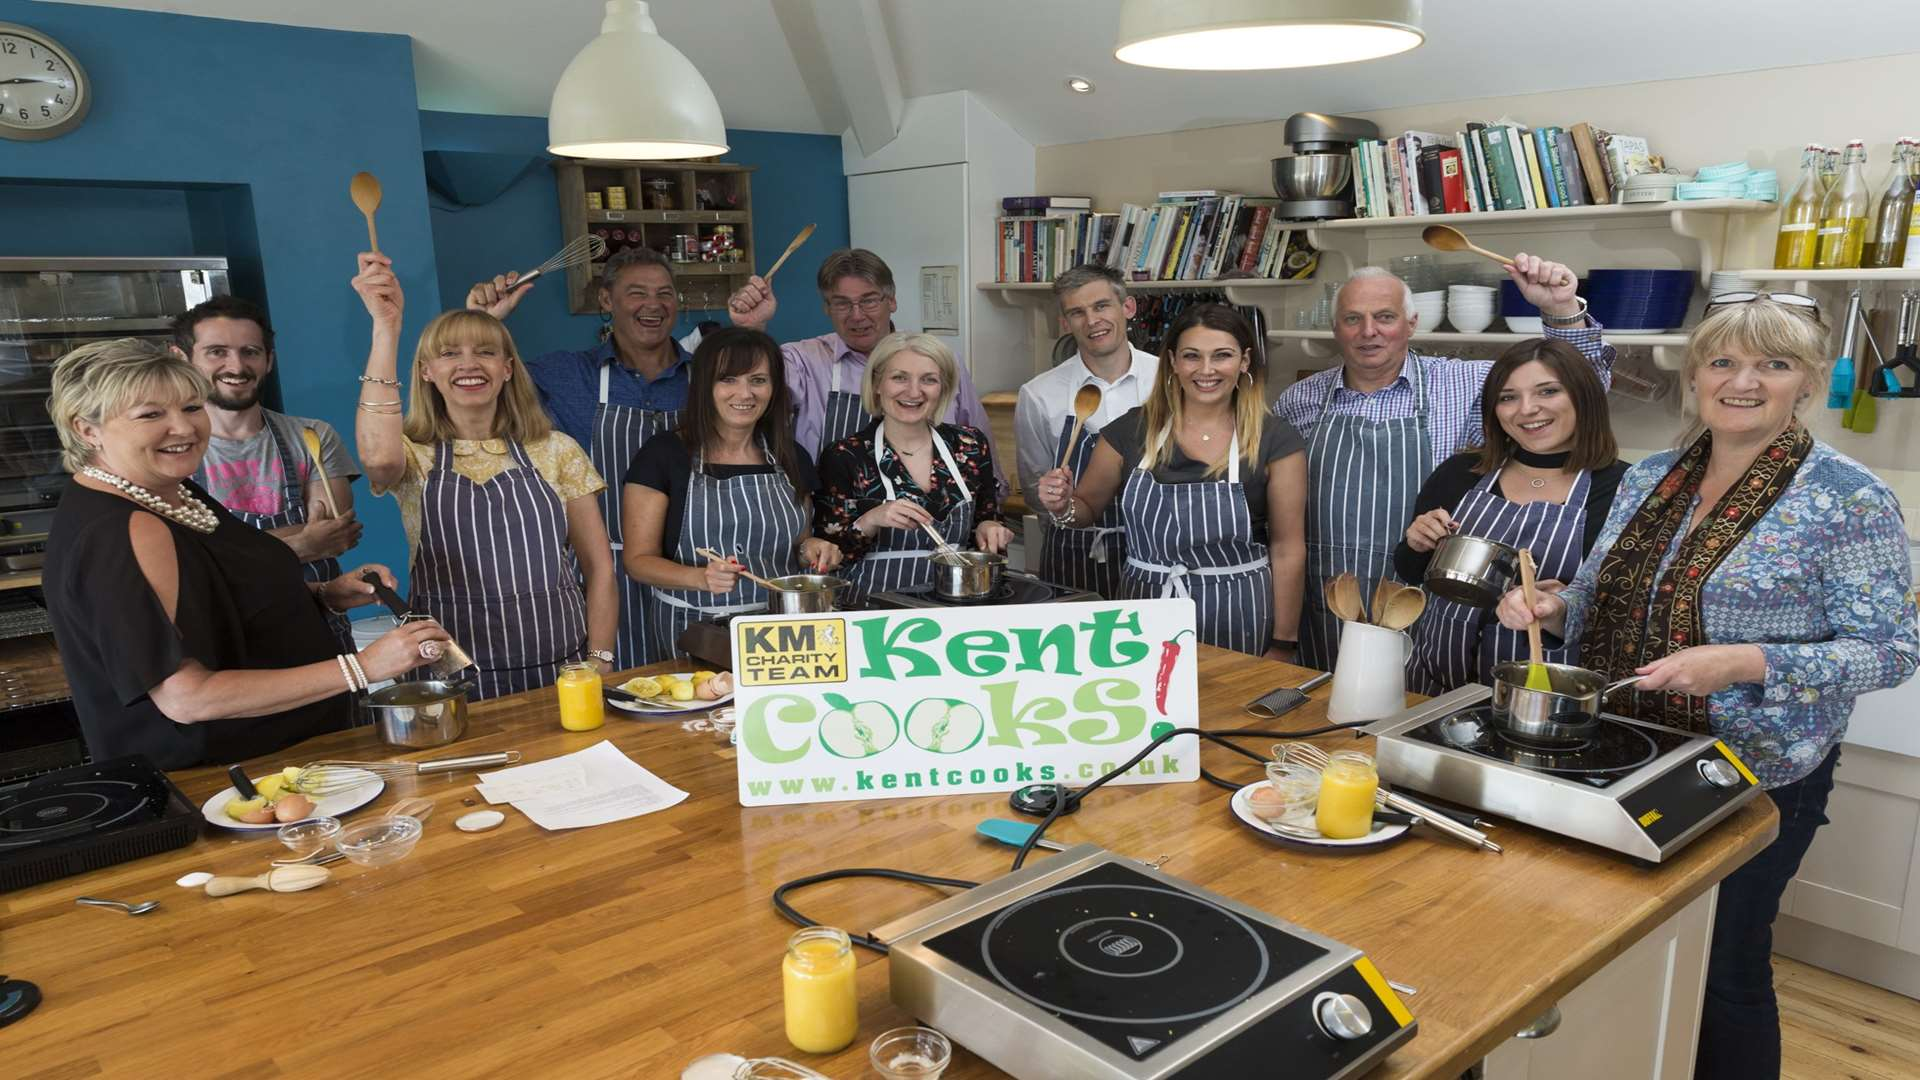 The judging panel are put through their paces at the summer launch of Kent Cooks 2017 at Chequers Kitchen Cookery School, Deal.